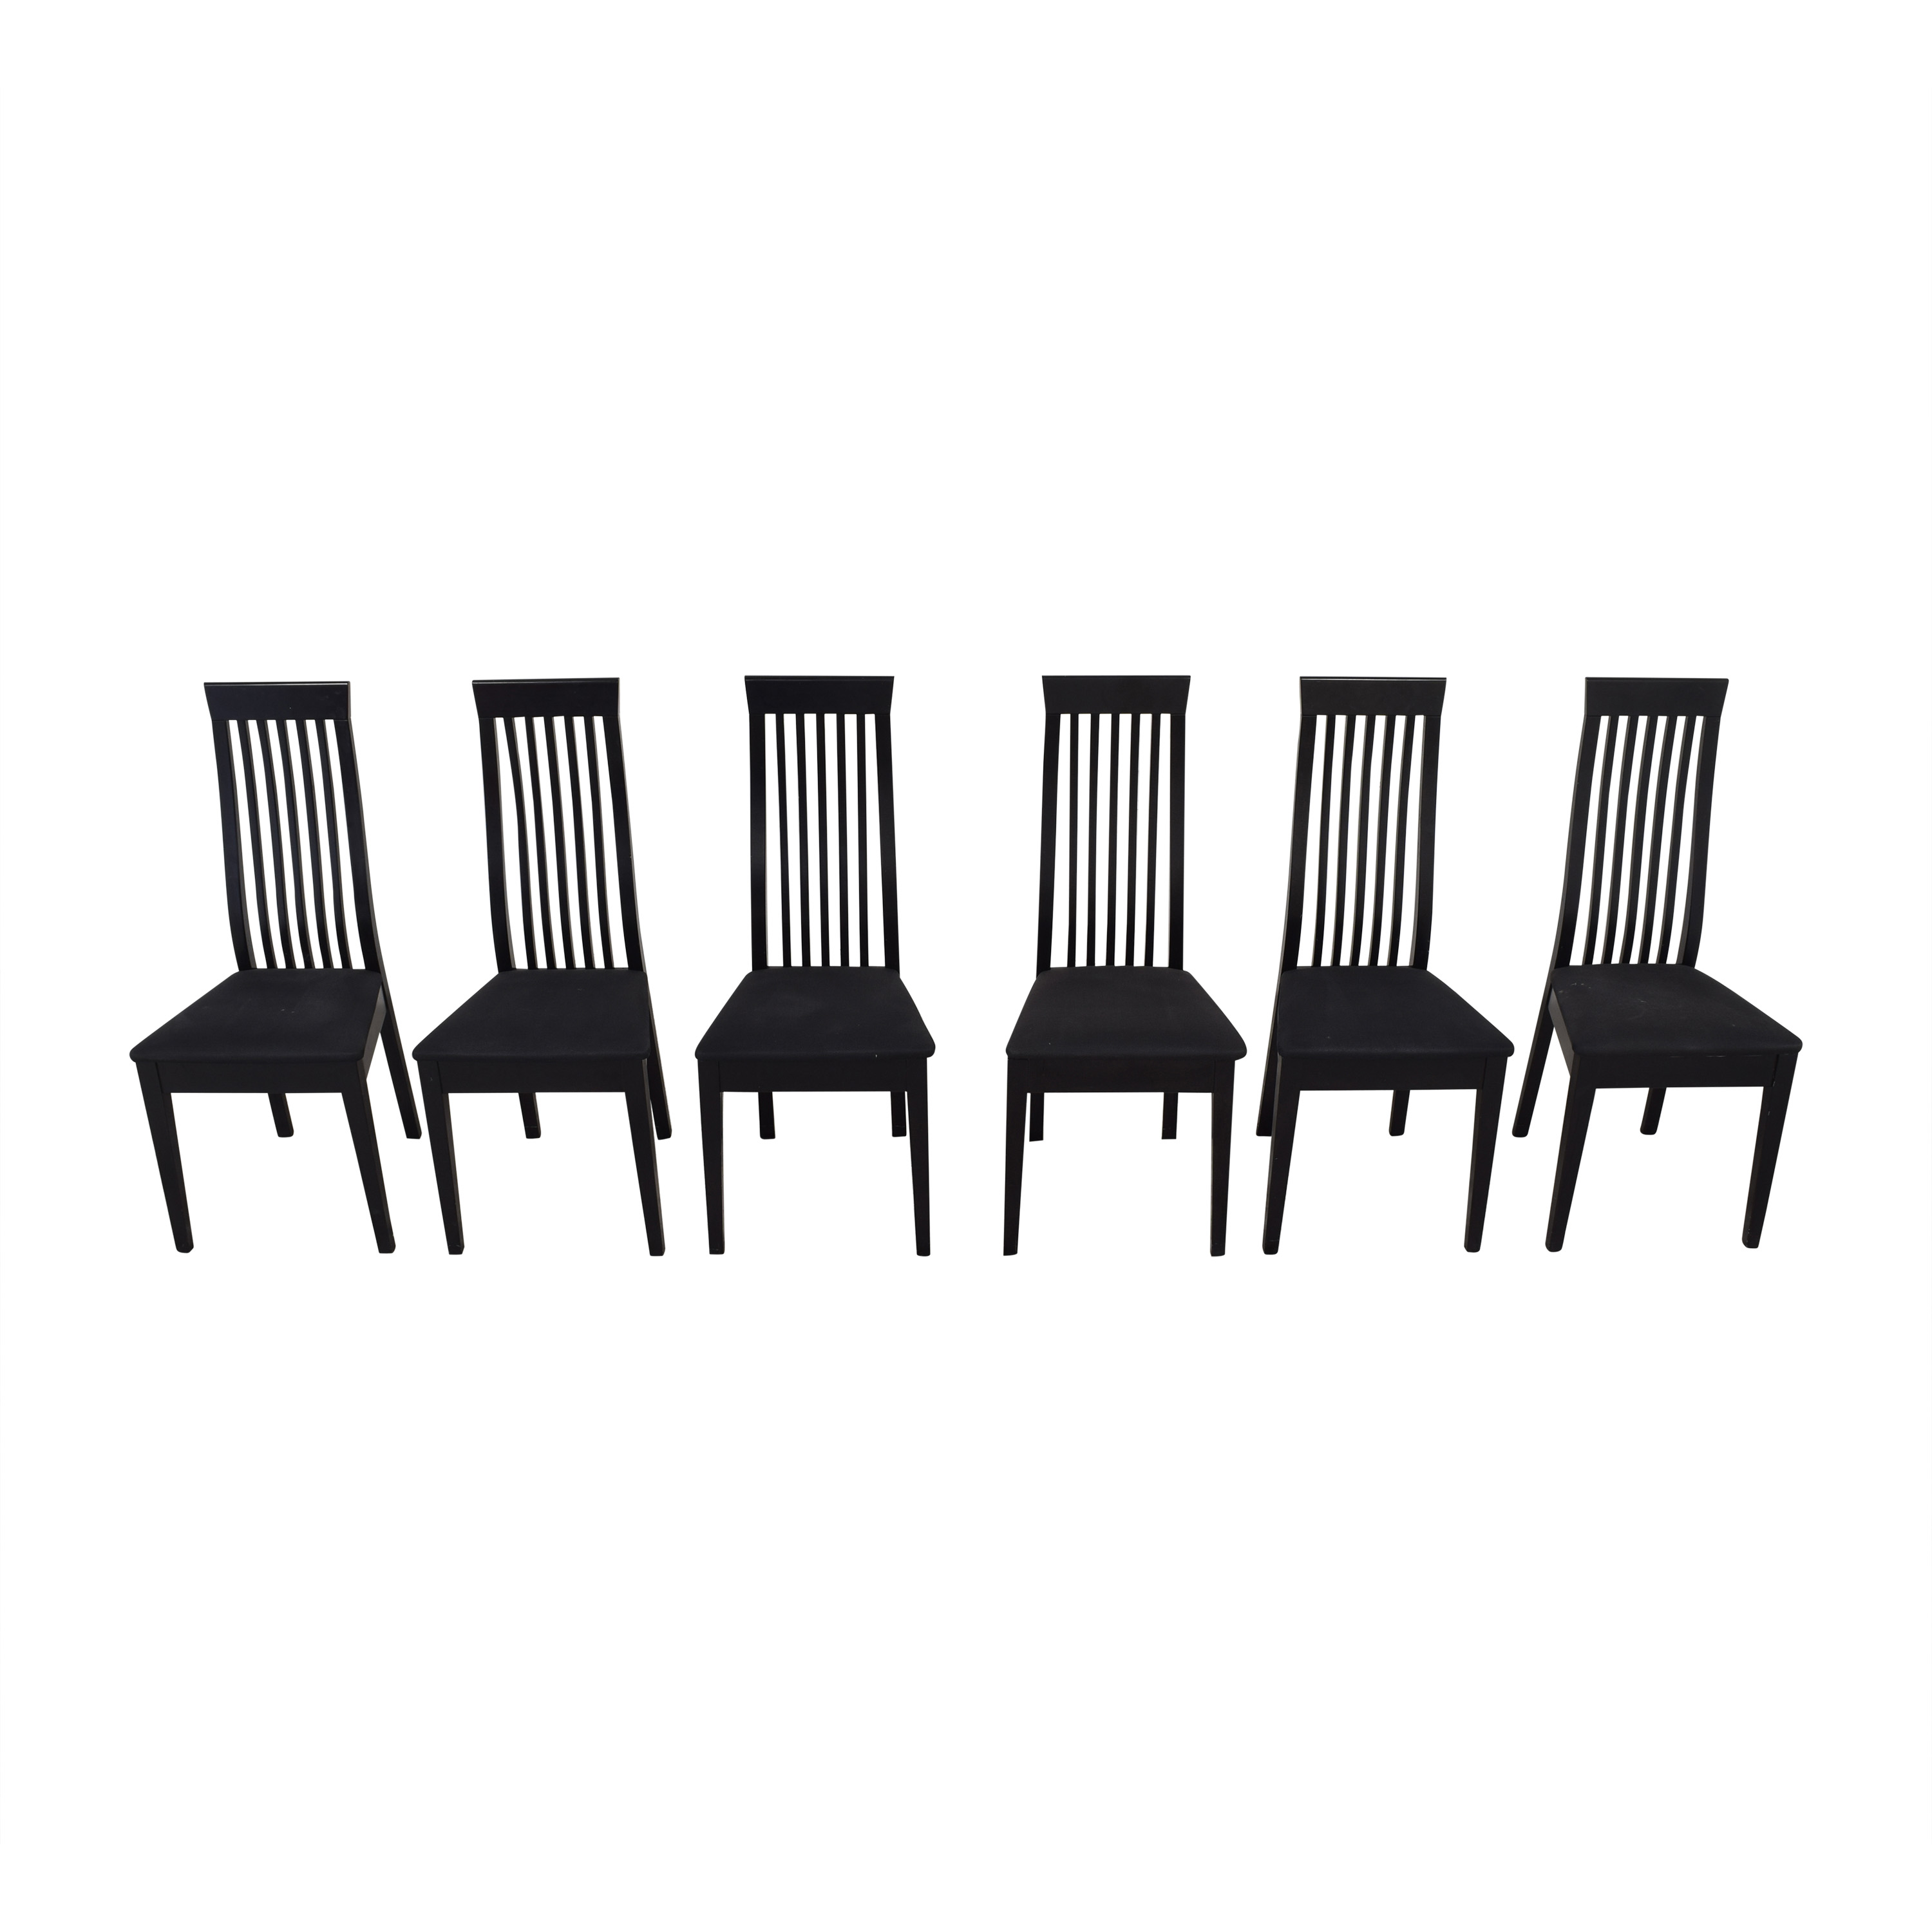 buy Calligaris Connubia Dining Chairs Calligaris Chairs